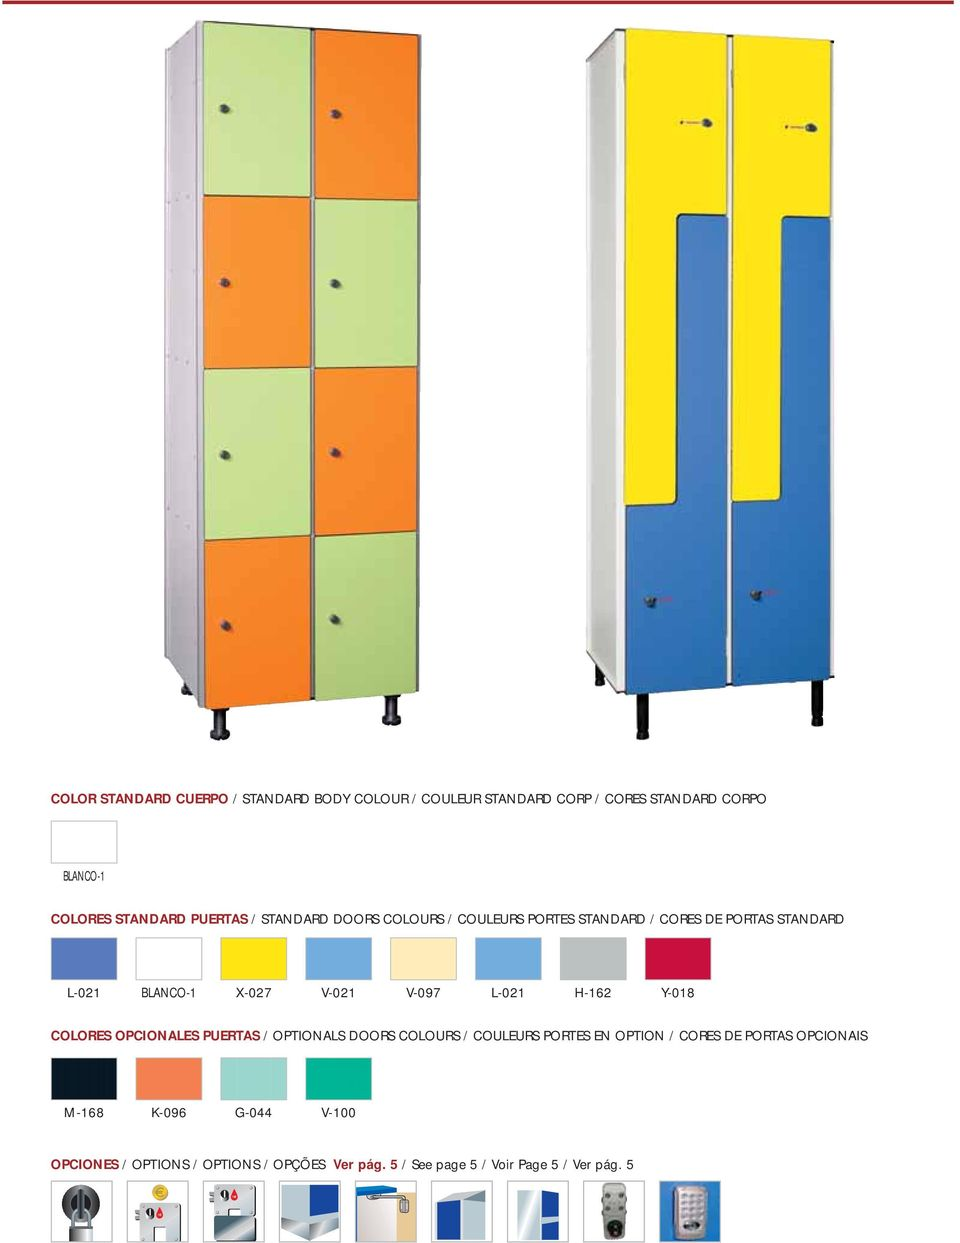 L-021 H-162 Y-018 COLORES OPCIONALES PUERTAS / OPTIONALS DOORS COLOURS / COULEURS PORTES EN OPTION / CORES DE PORTAS